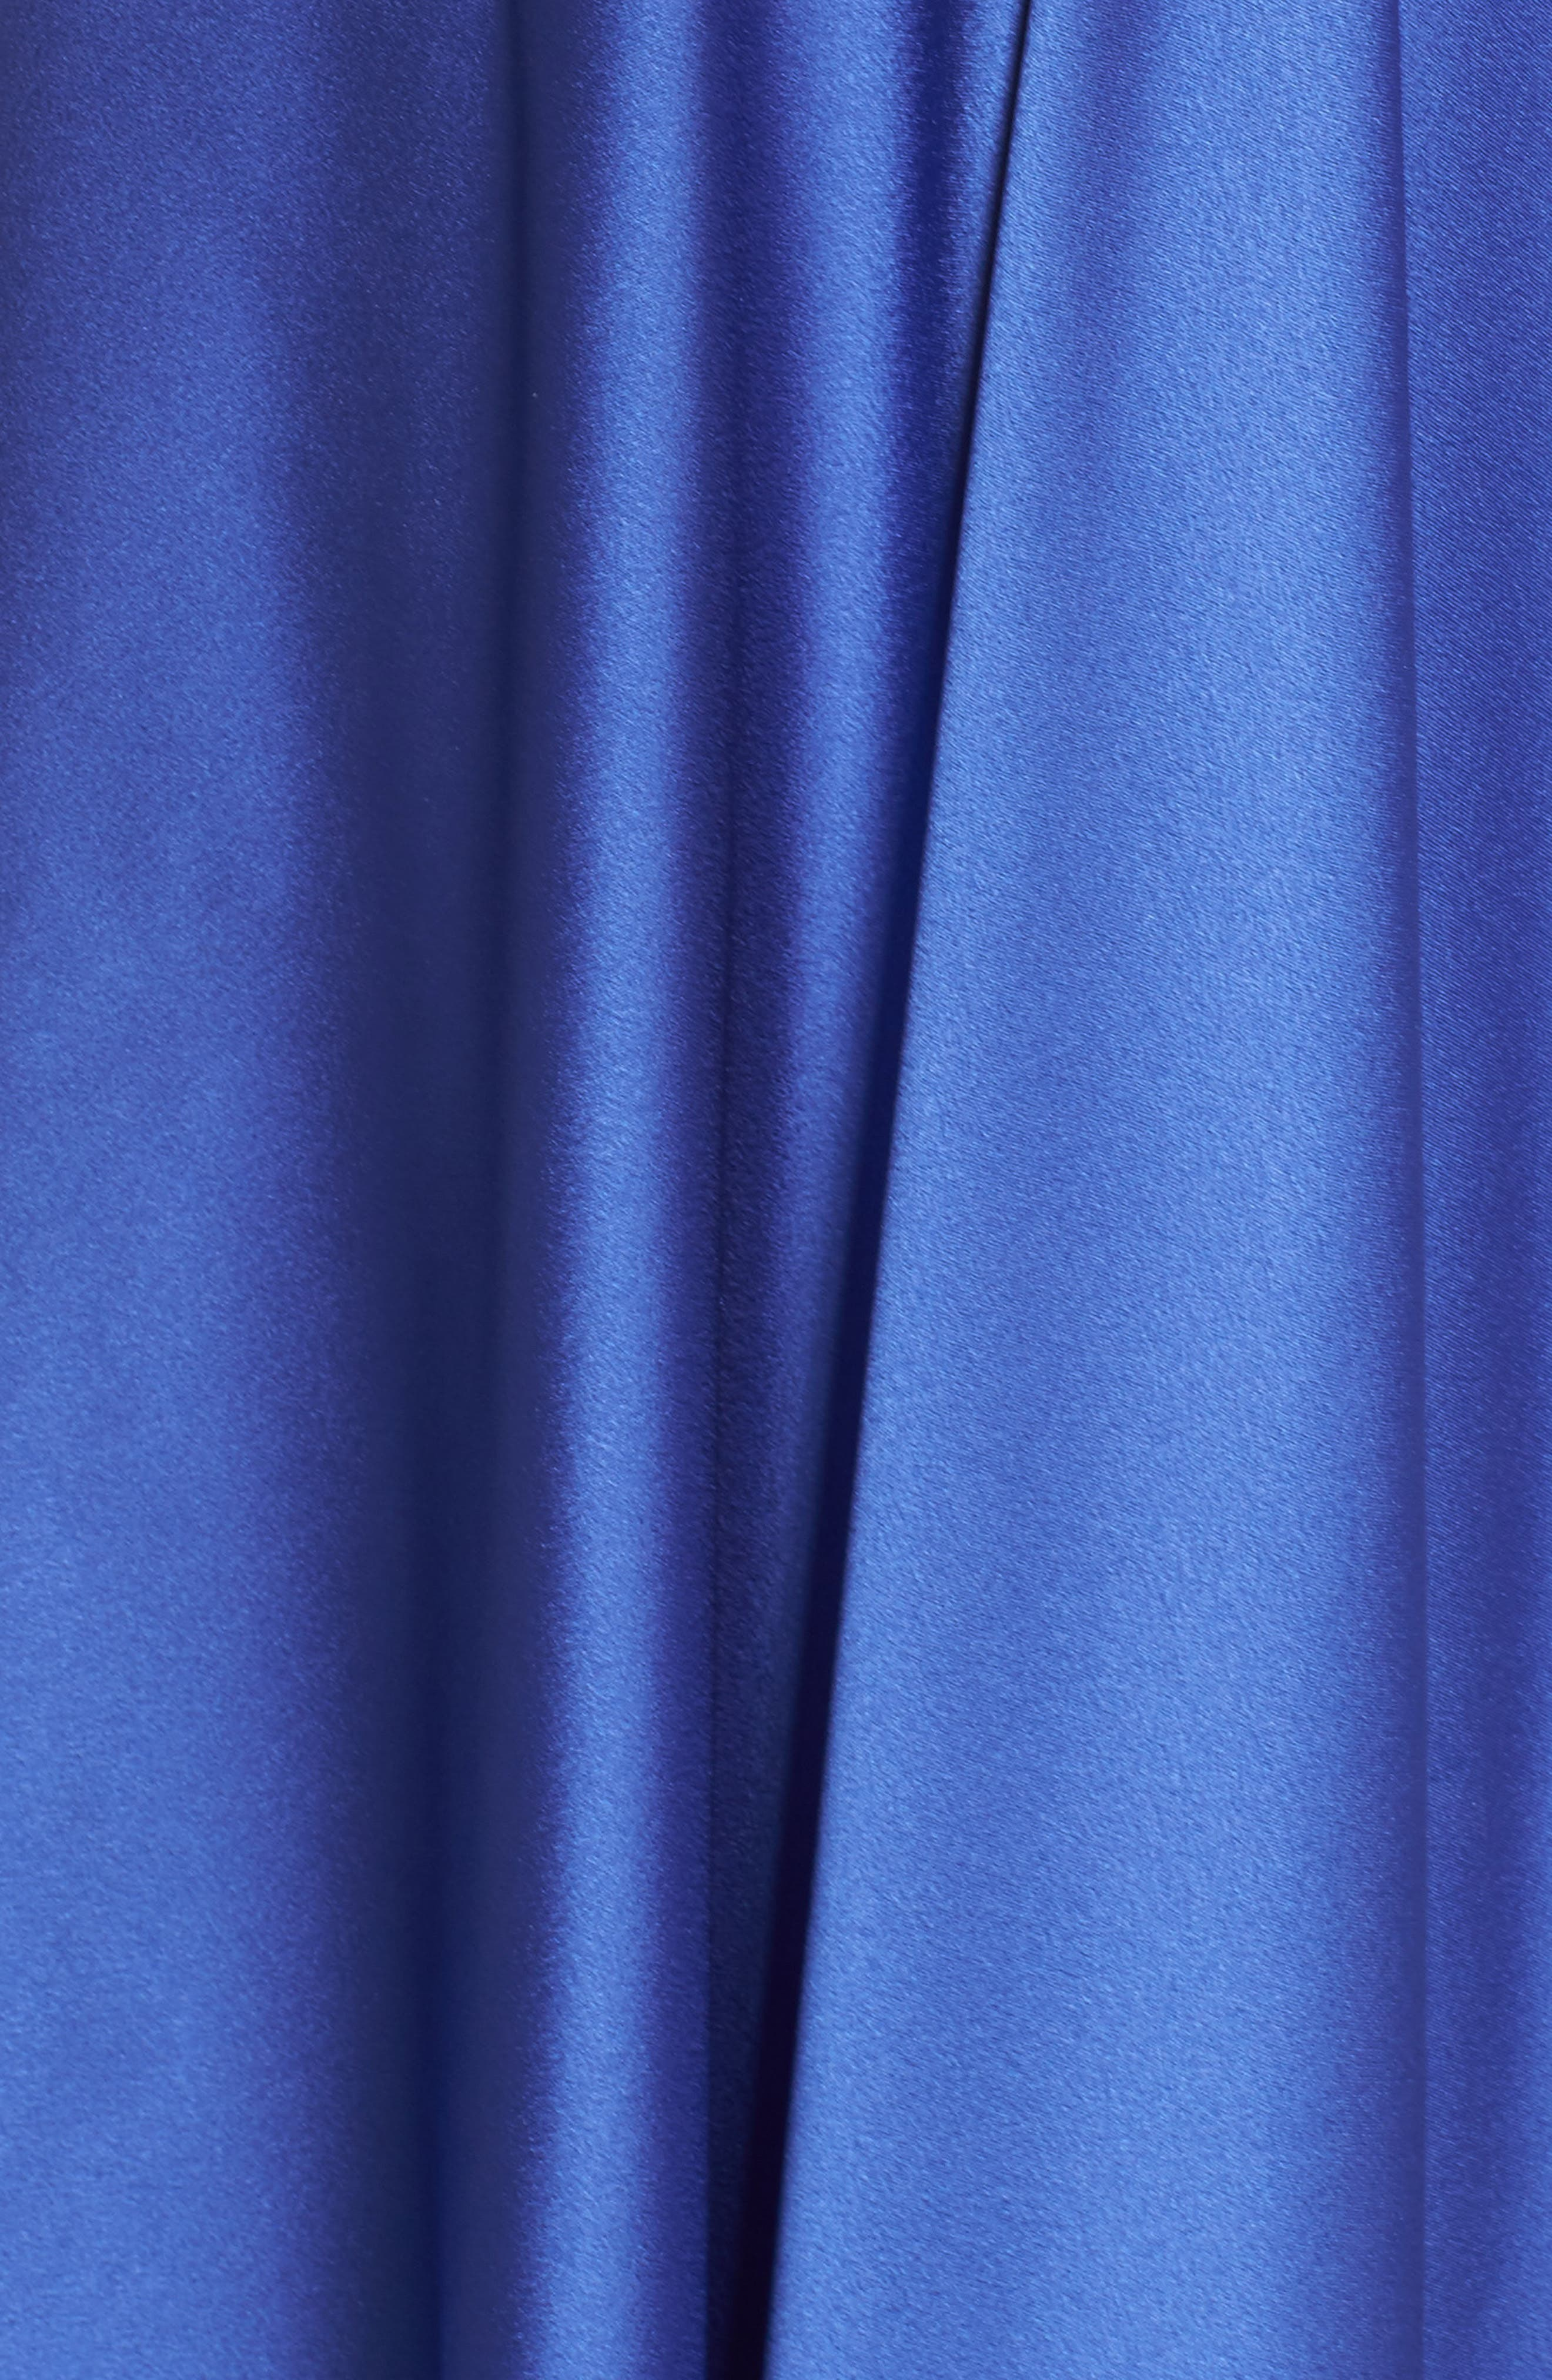 Embroidered Off the Shoulder Satin A-Line Gown,                             Alternate thumbnail 5, color,                             400